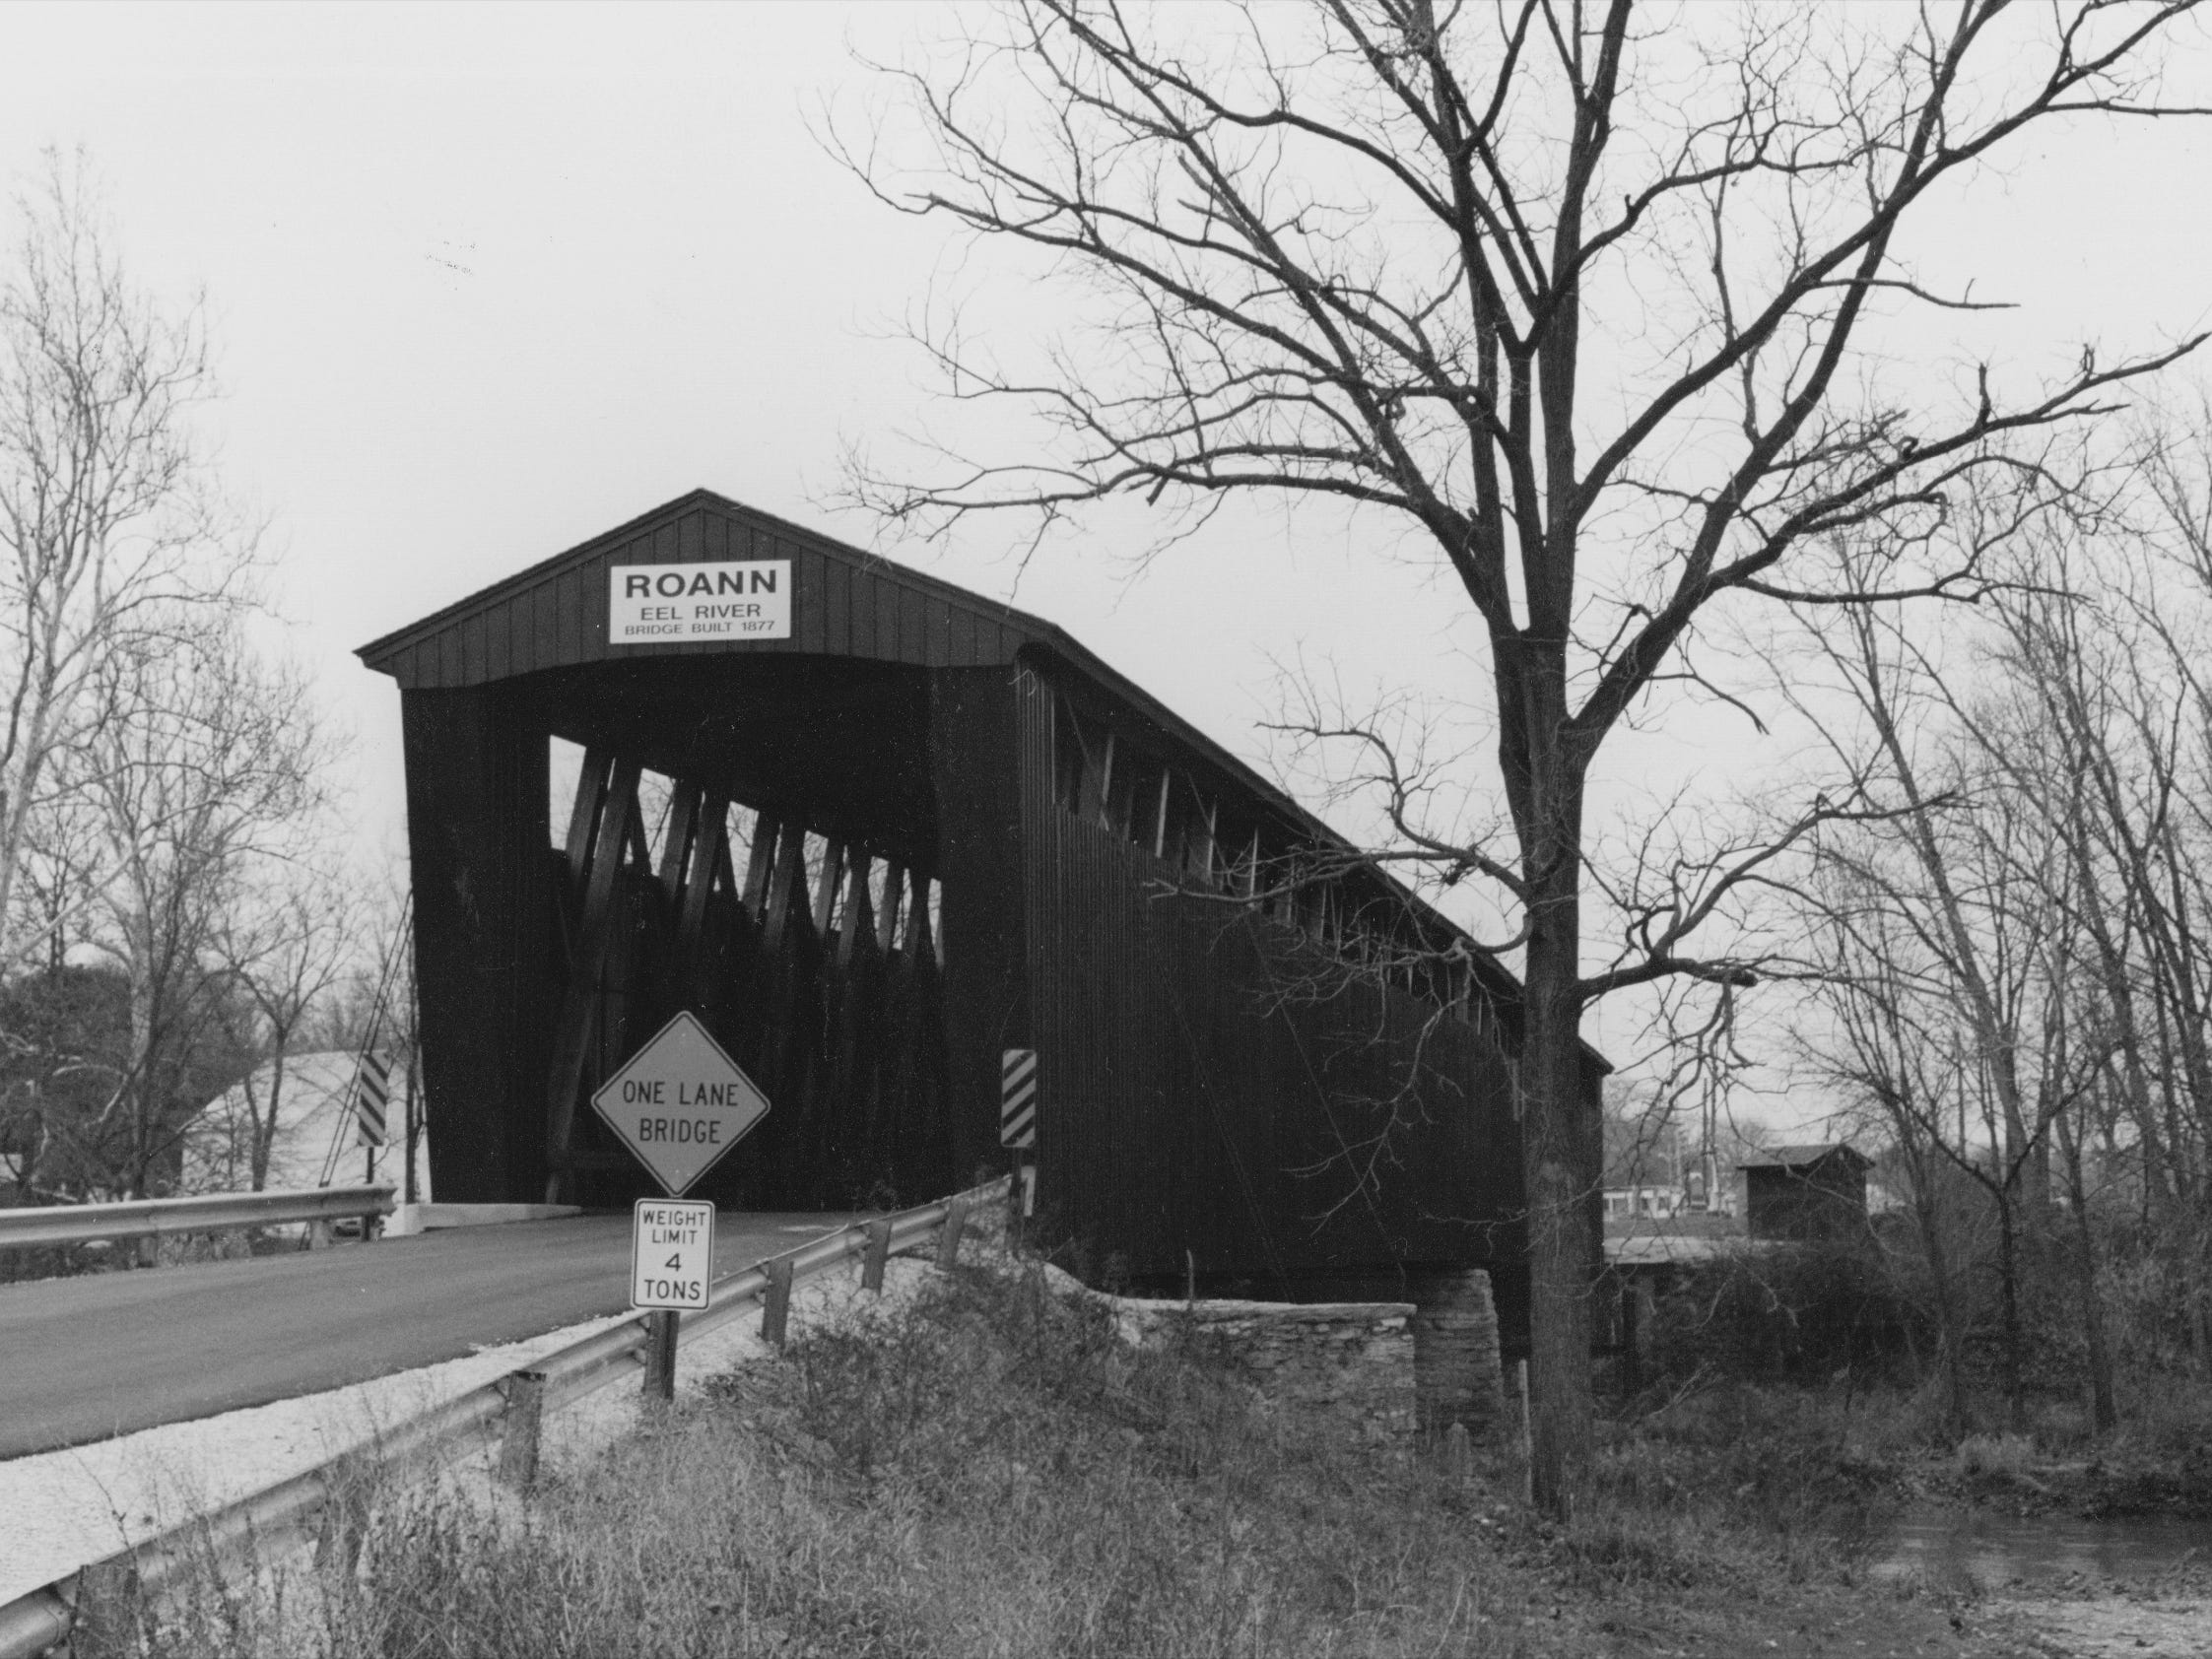 The covered bridge over the Eel River in Roann in Wabash County in 1993. This is the state's only covered bridge with a sprinkler system. The 1877 structure was rebuilt after an arson fire nearly destroyed it.